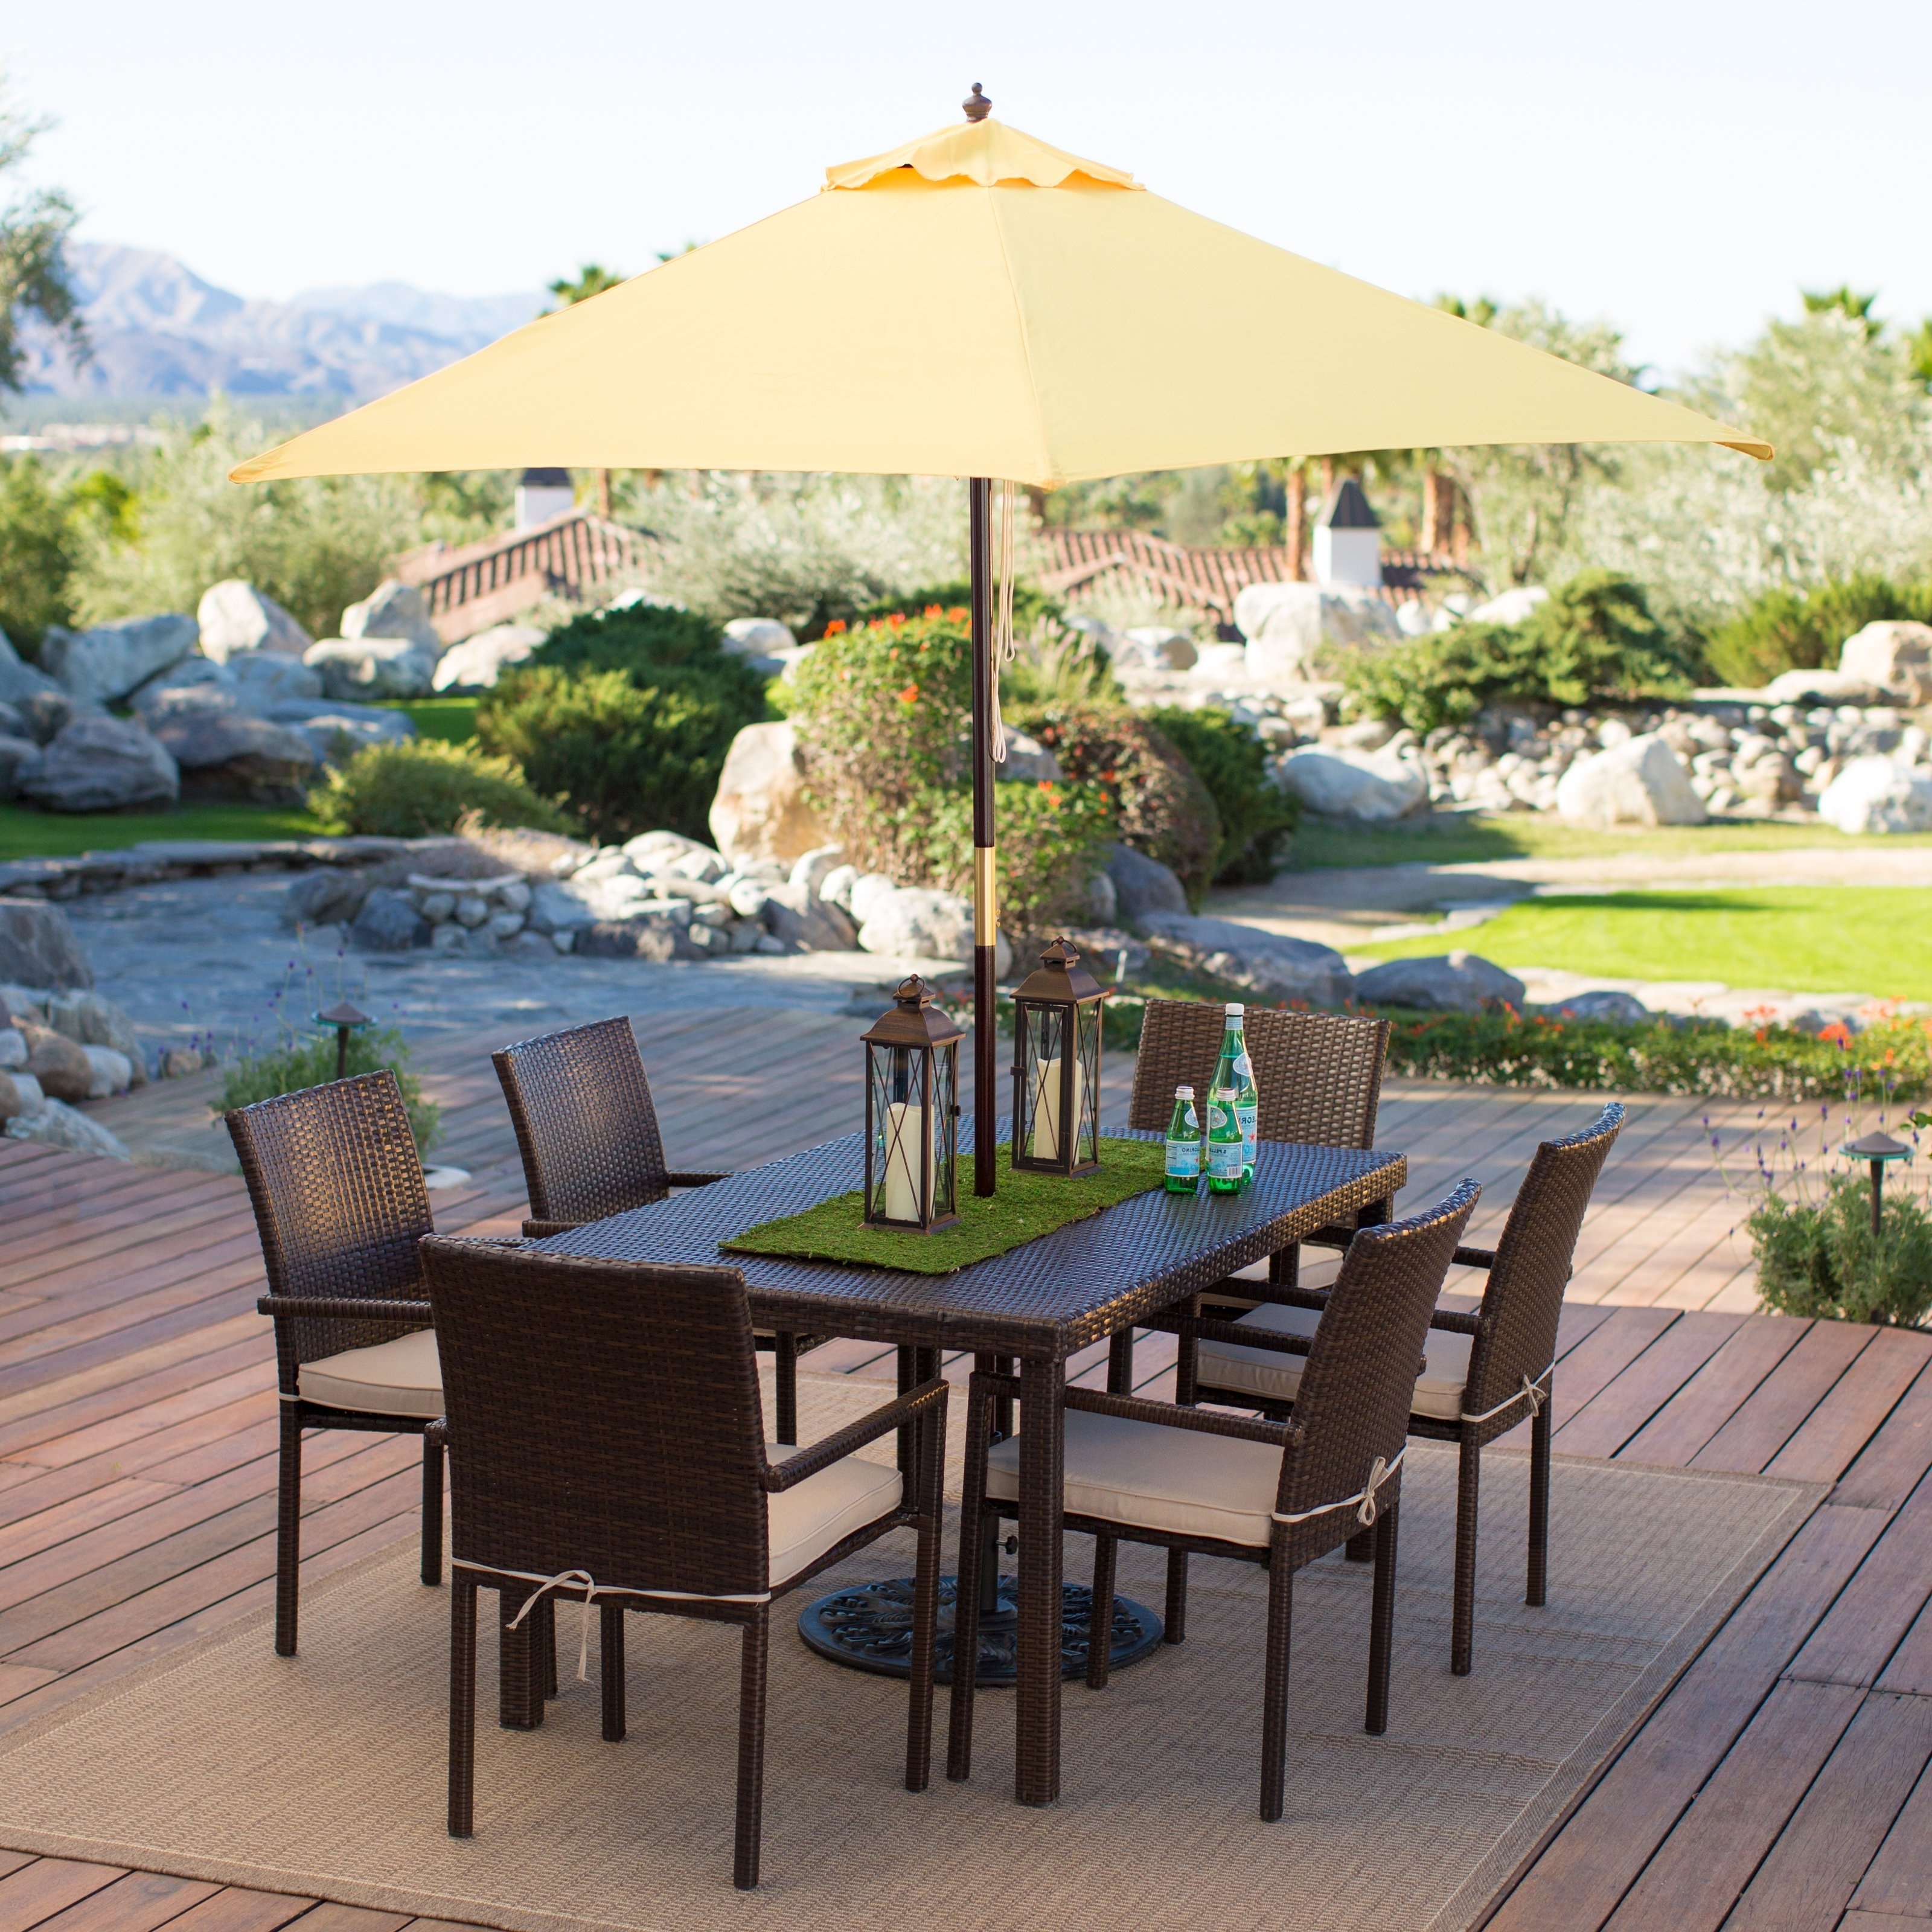 2018 Gold Coast Patio Umbrellas Pertaining To Outdoor Umbrella For Sale Outdoor Umbrella For Sale Cape Town Umbrellas (Gallery 12 of 20)